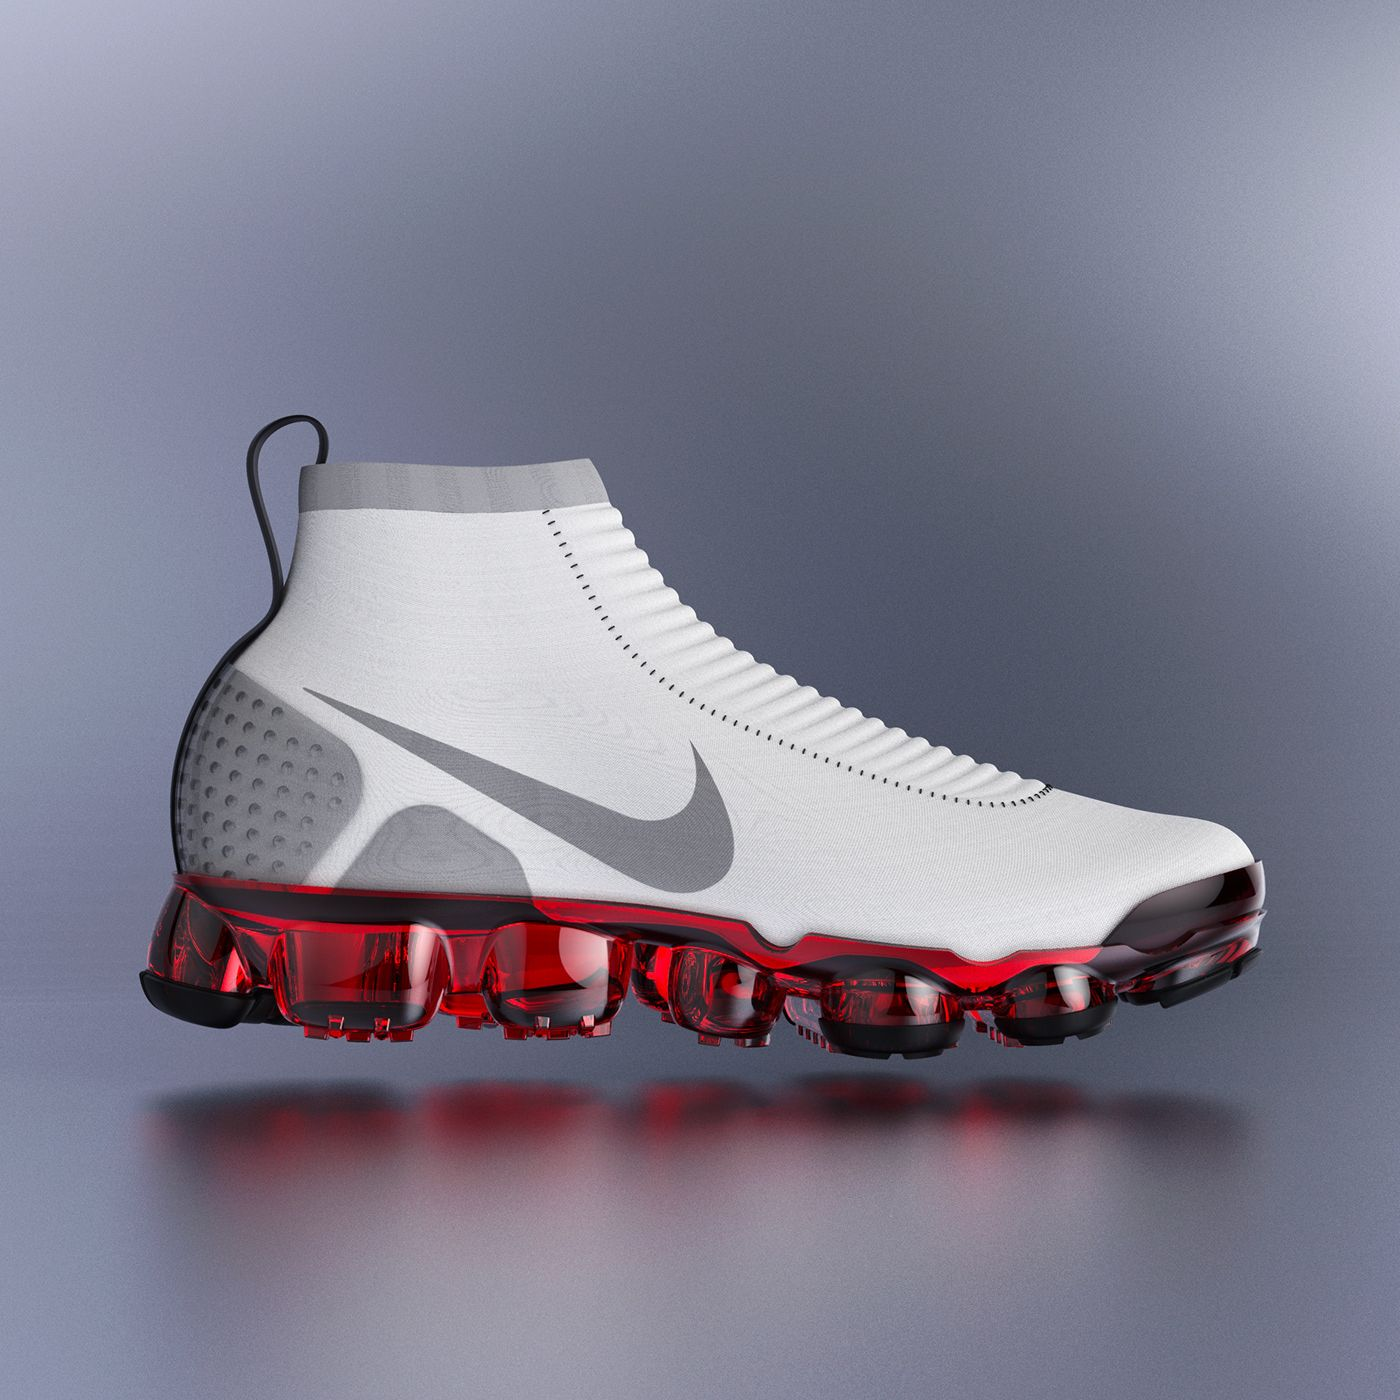 54a4fa426 Nike Vapor-Mars on Behance